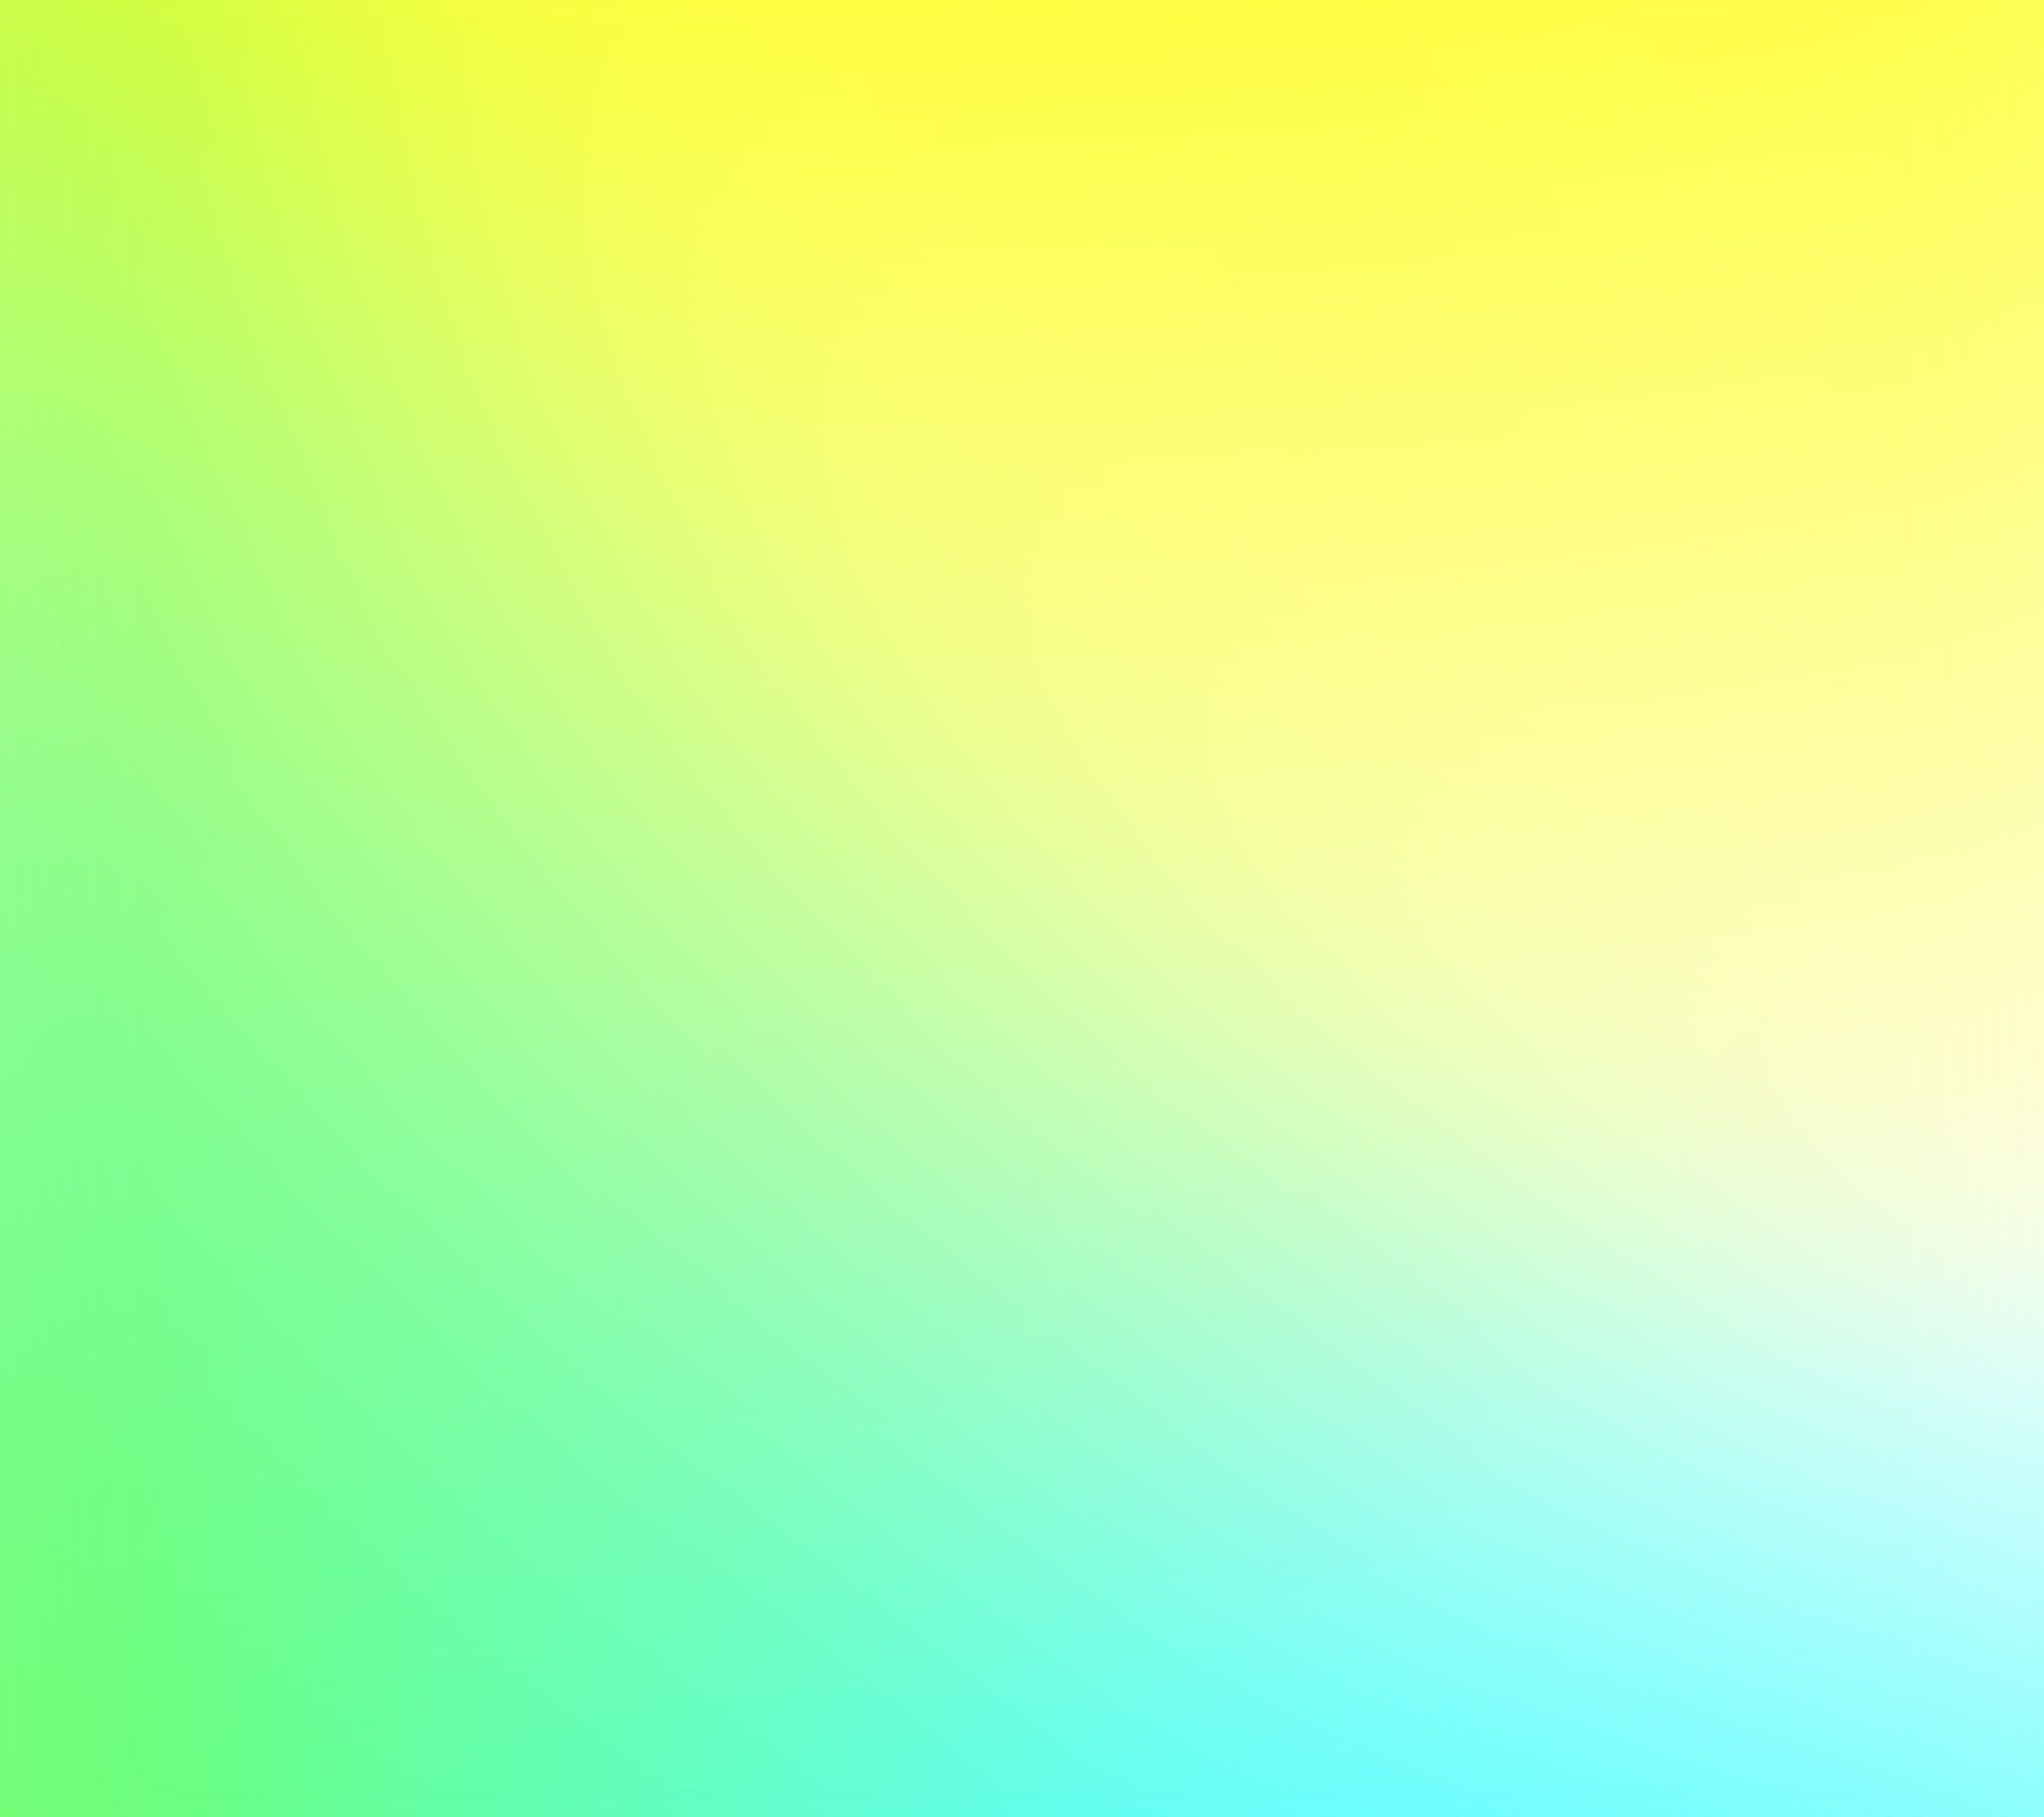 sg85-bright-yellow-neon-green-sunny-gradation-blur | Android ...